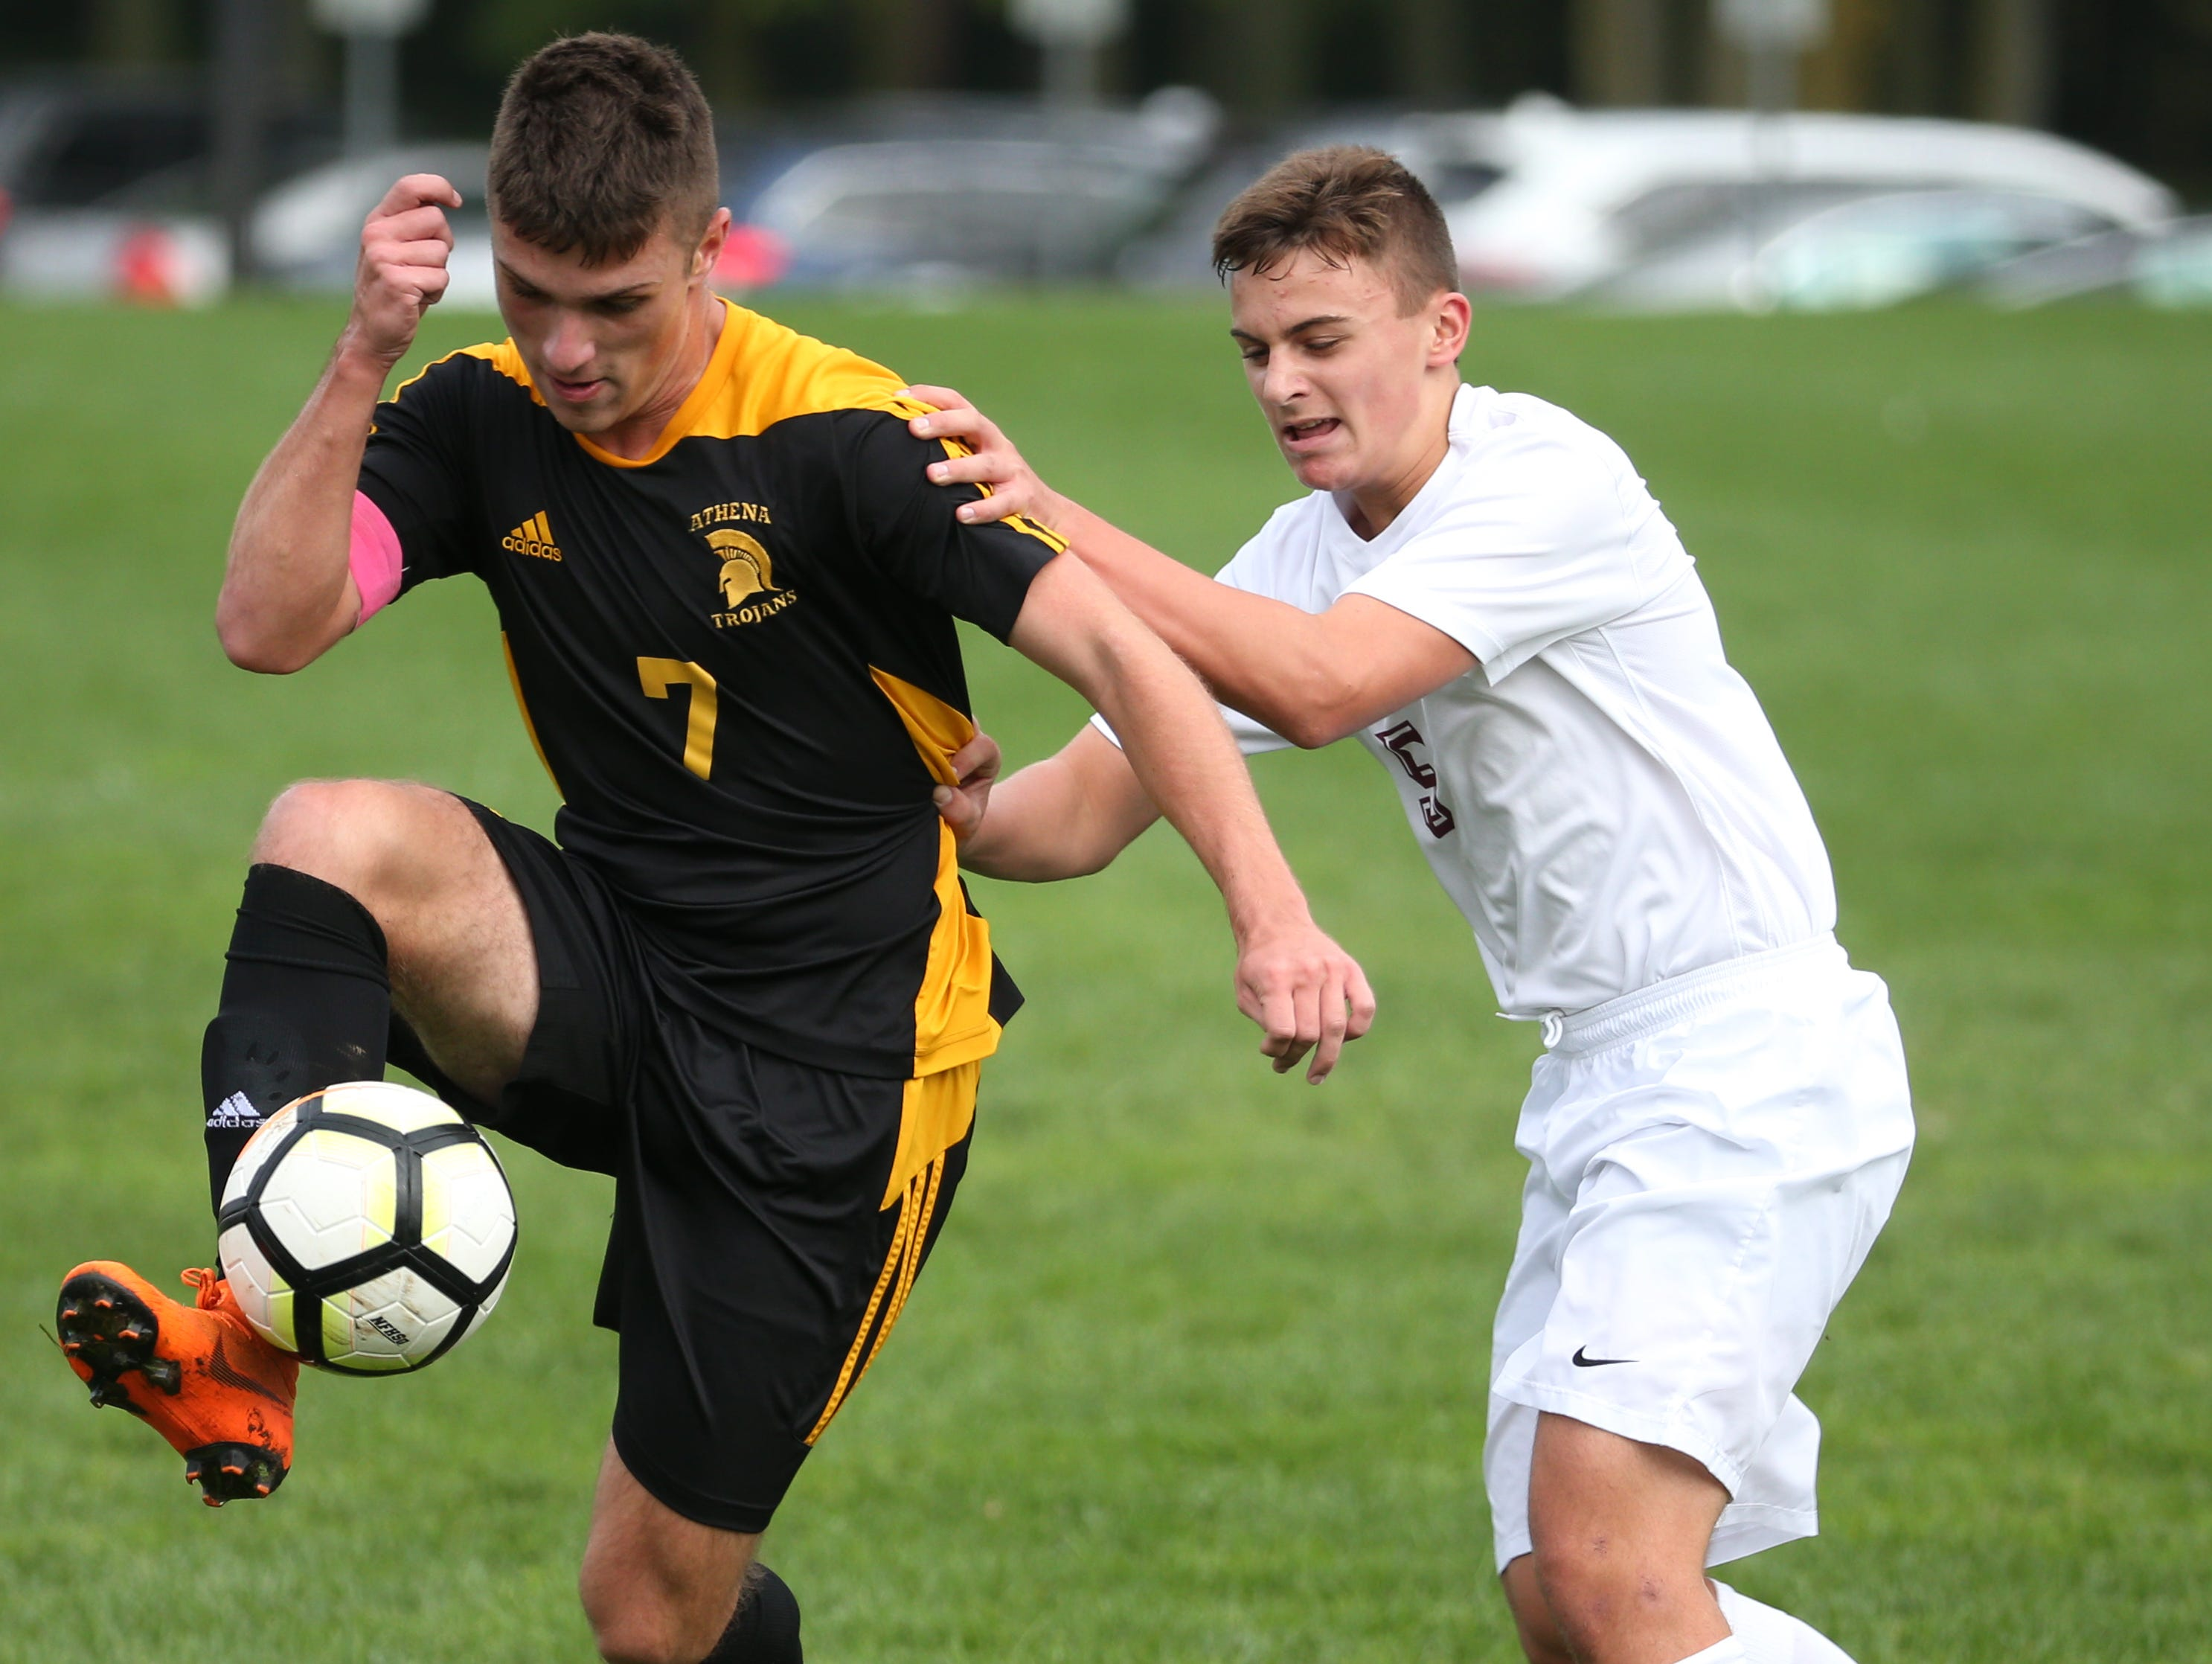 Greece Athena #7 Charles Takatch  against Aquinas #5 Ben Geyer.